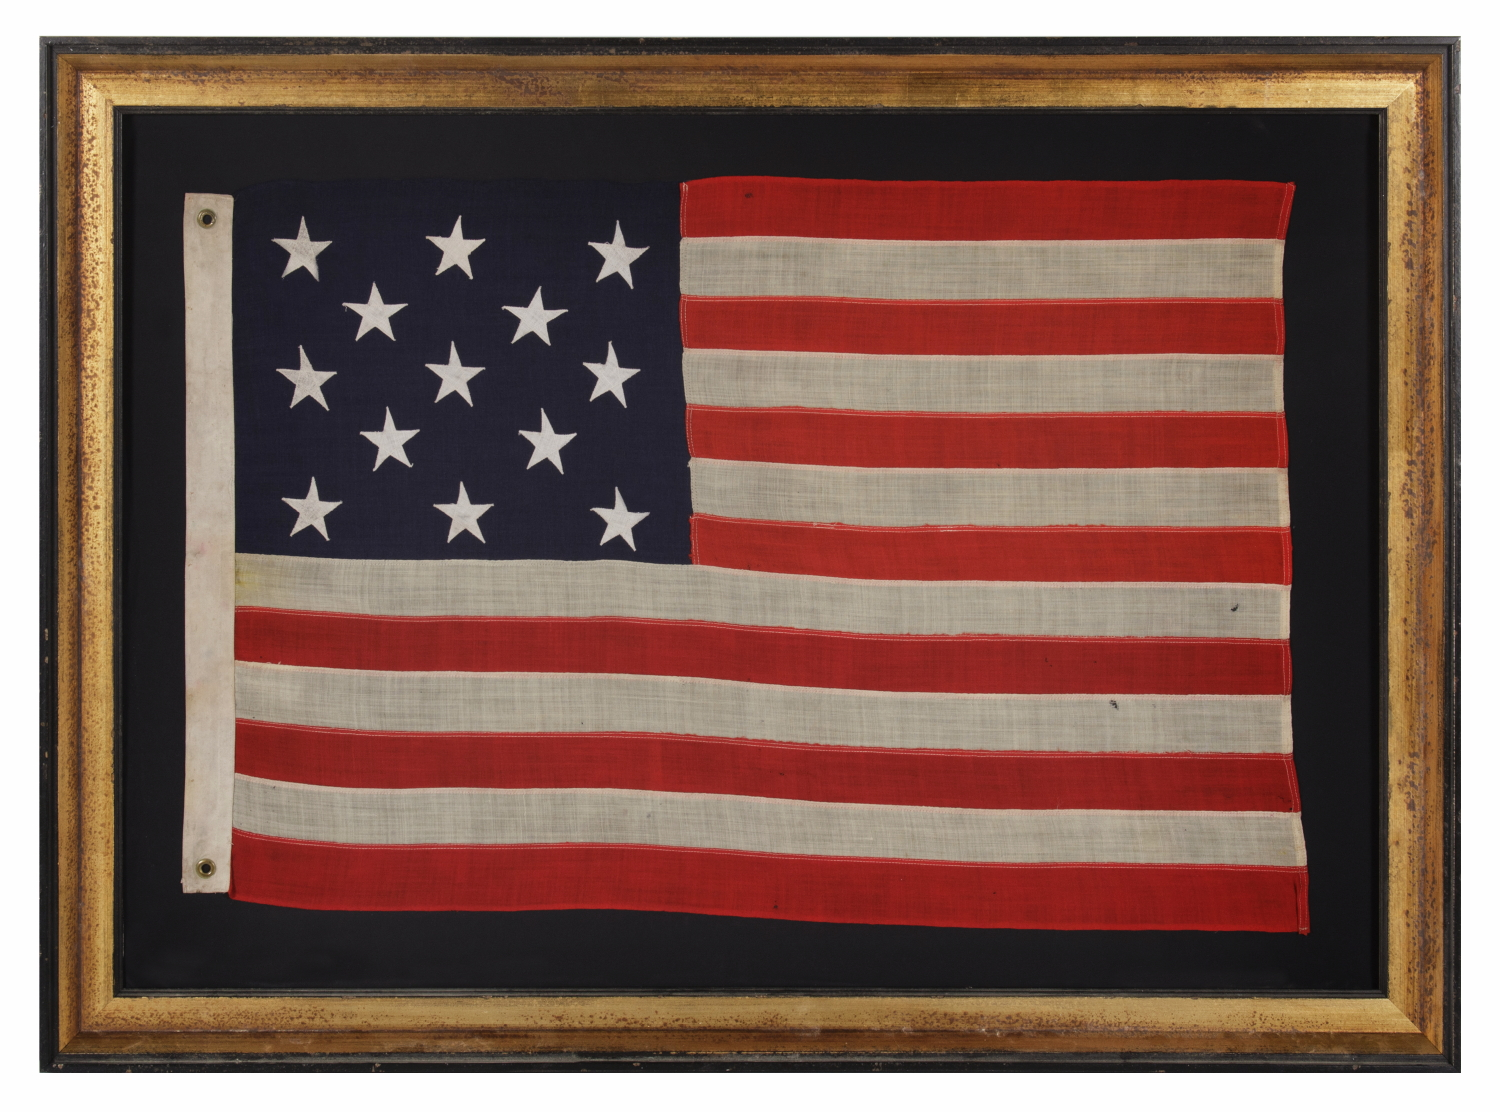 Jeff bridgman antique flags and painted furniture 13 stars 13 stars arranged in a 3 2 3 2 3 pattern on publicscrutiny Image collections